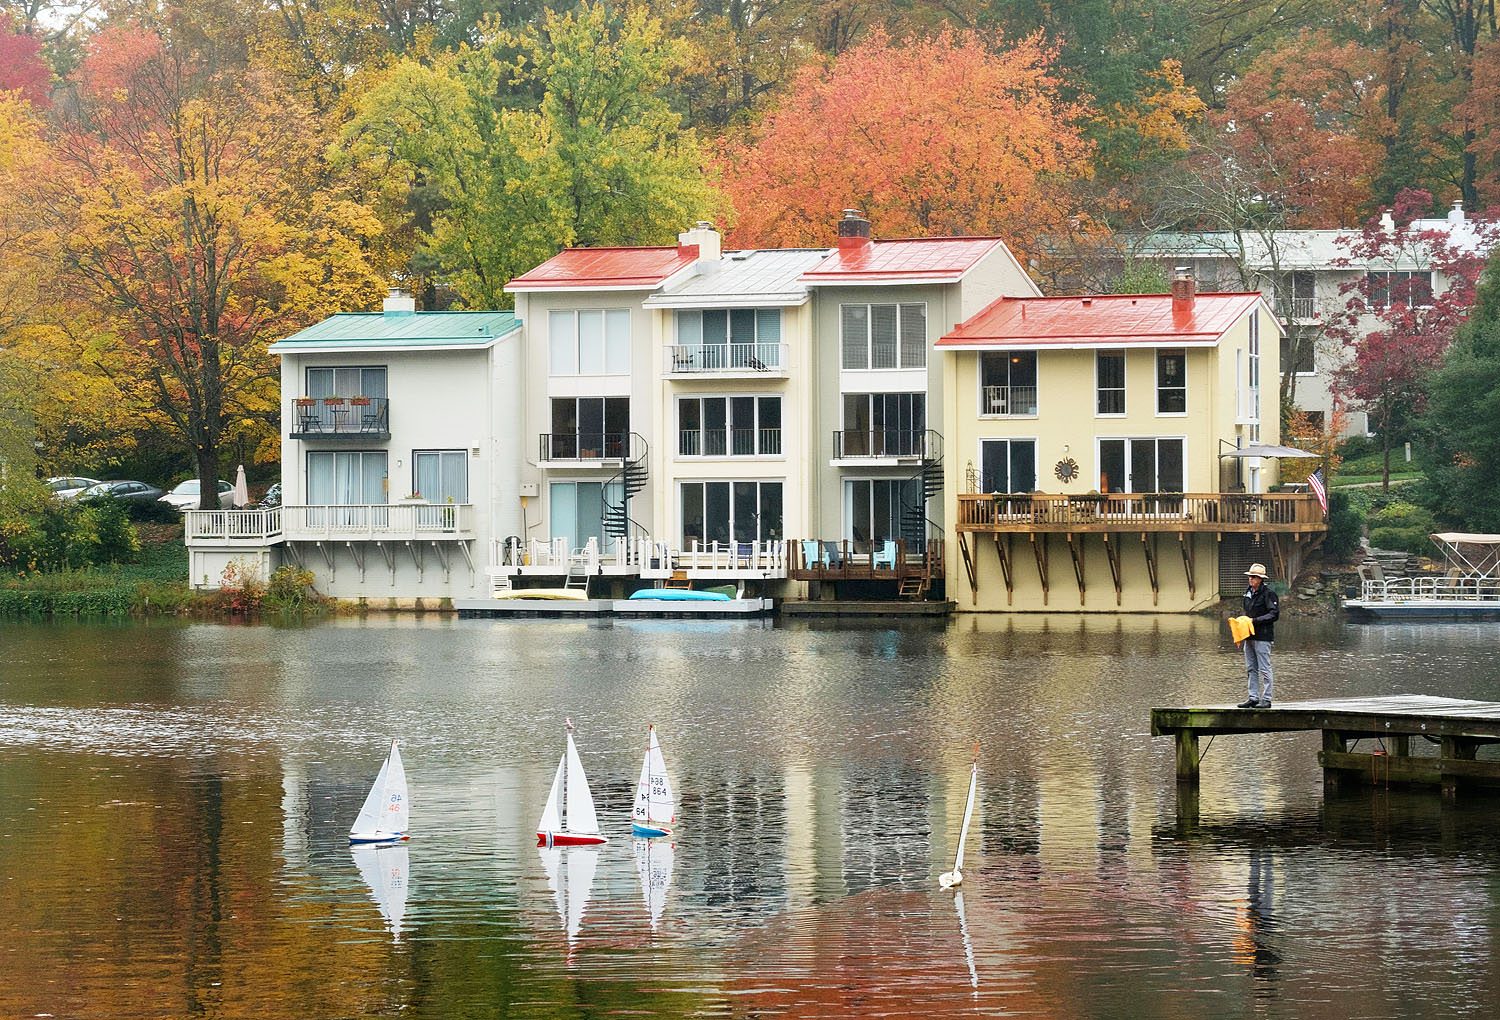 Remote controlled sailboats at Lake Anne in Reston, Northern Virginia